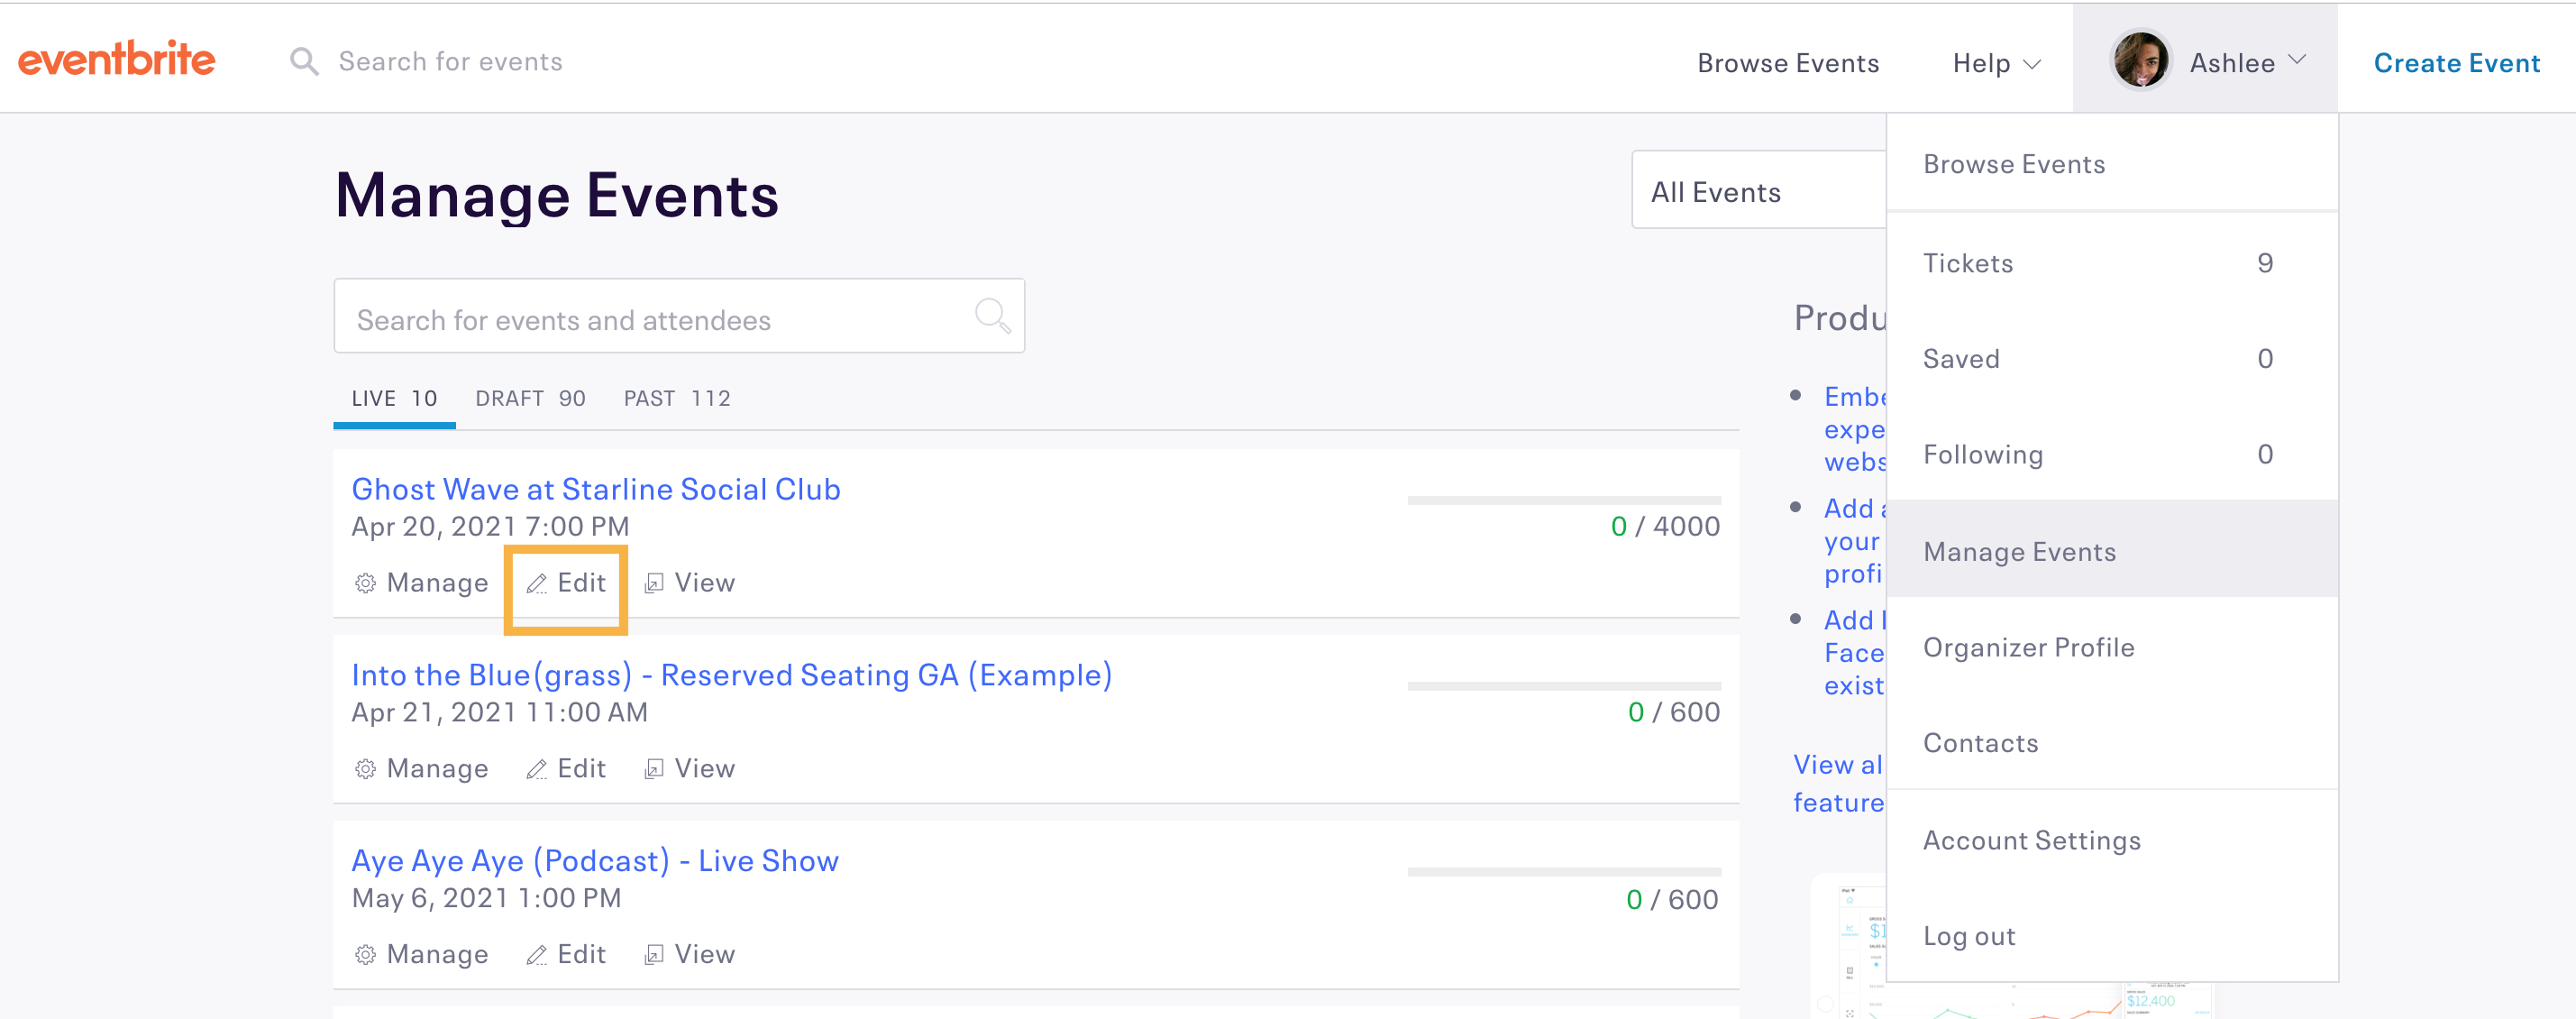 Event Ticket Sales Spreadsheet Template In How To Set And Restrict Your Event's Total Capacity  Eventbrite